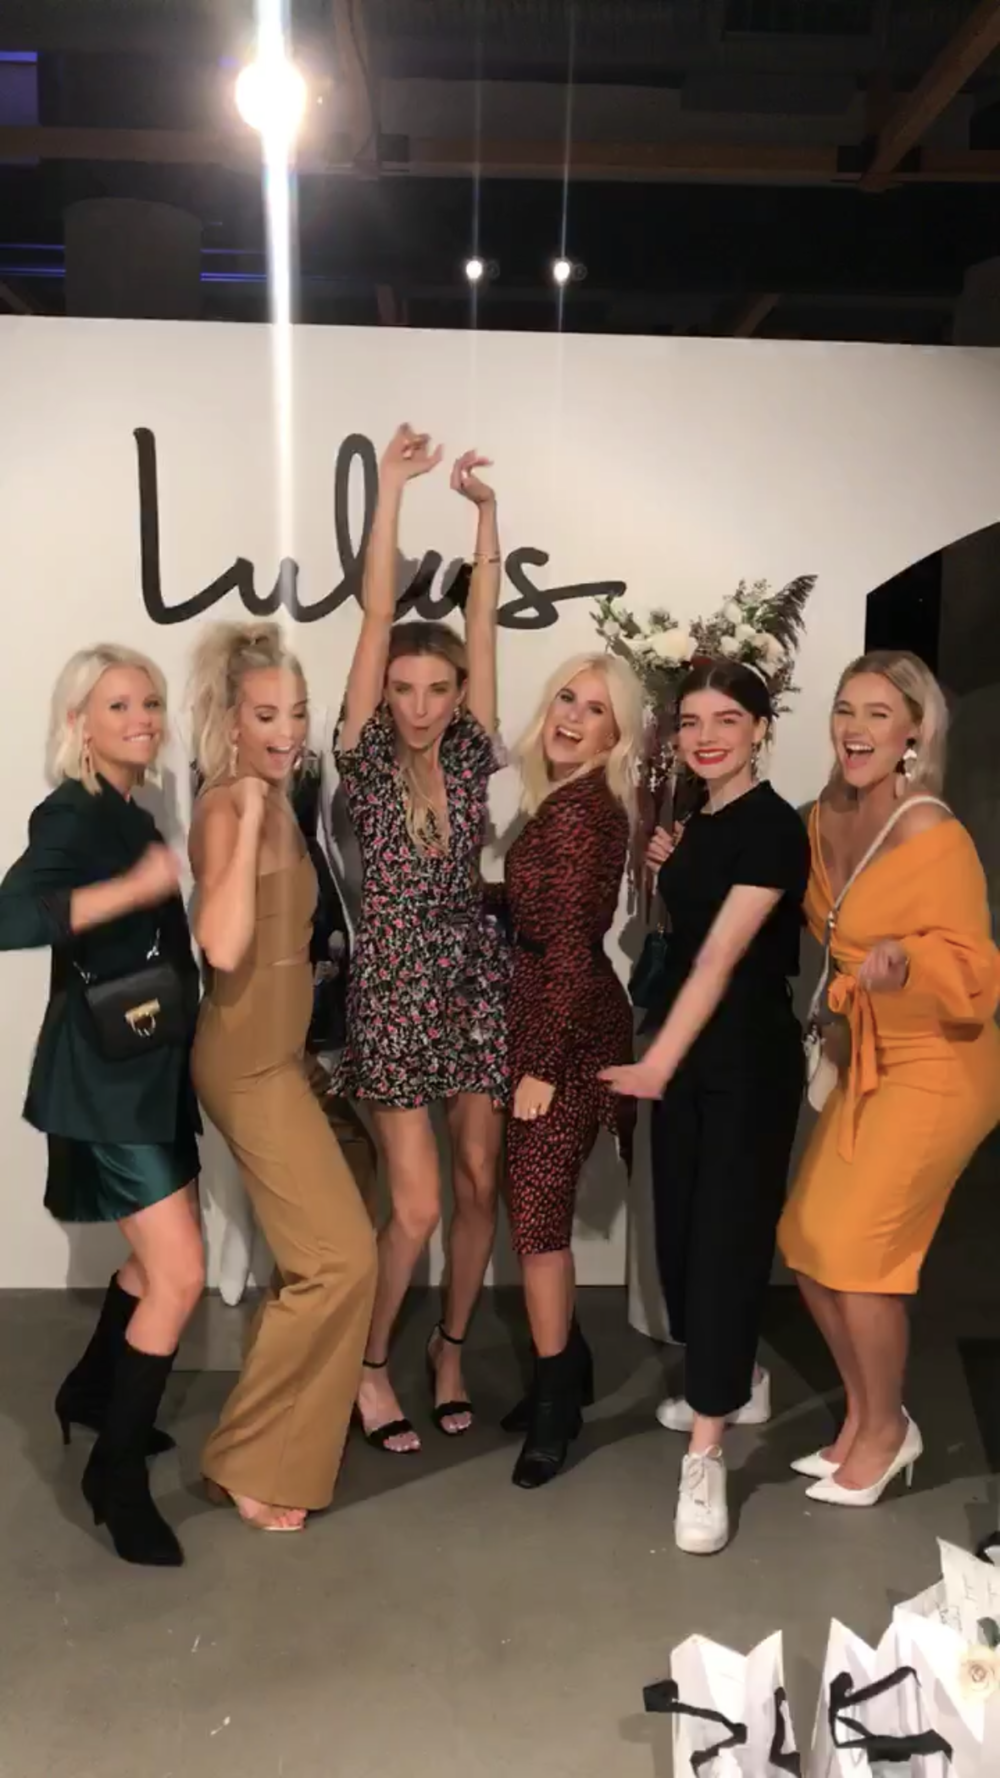 Bre Sheppard - My First NYFW - Lulus Party Dance.PNG